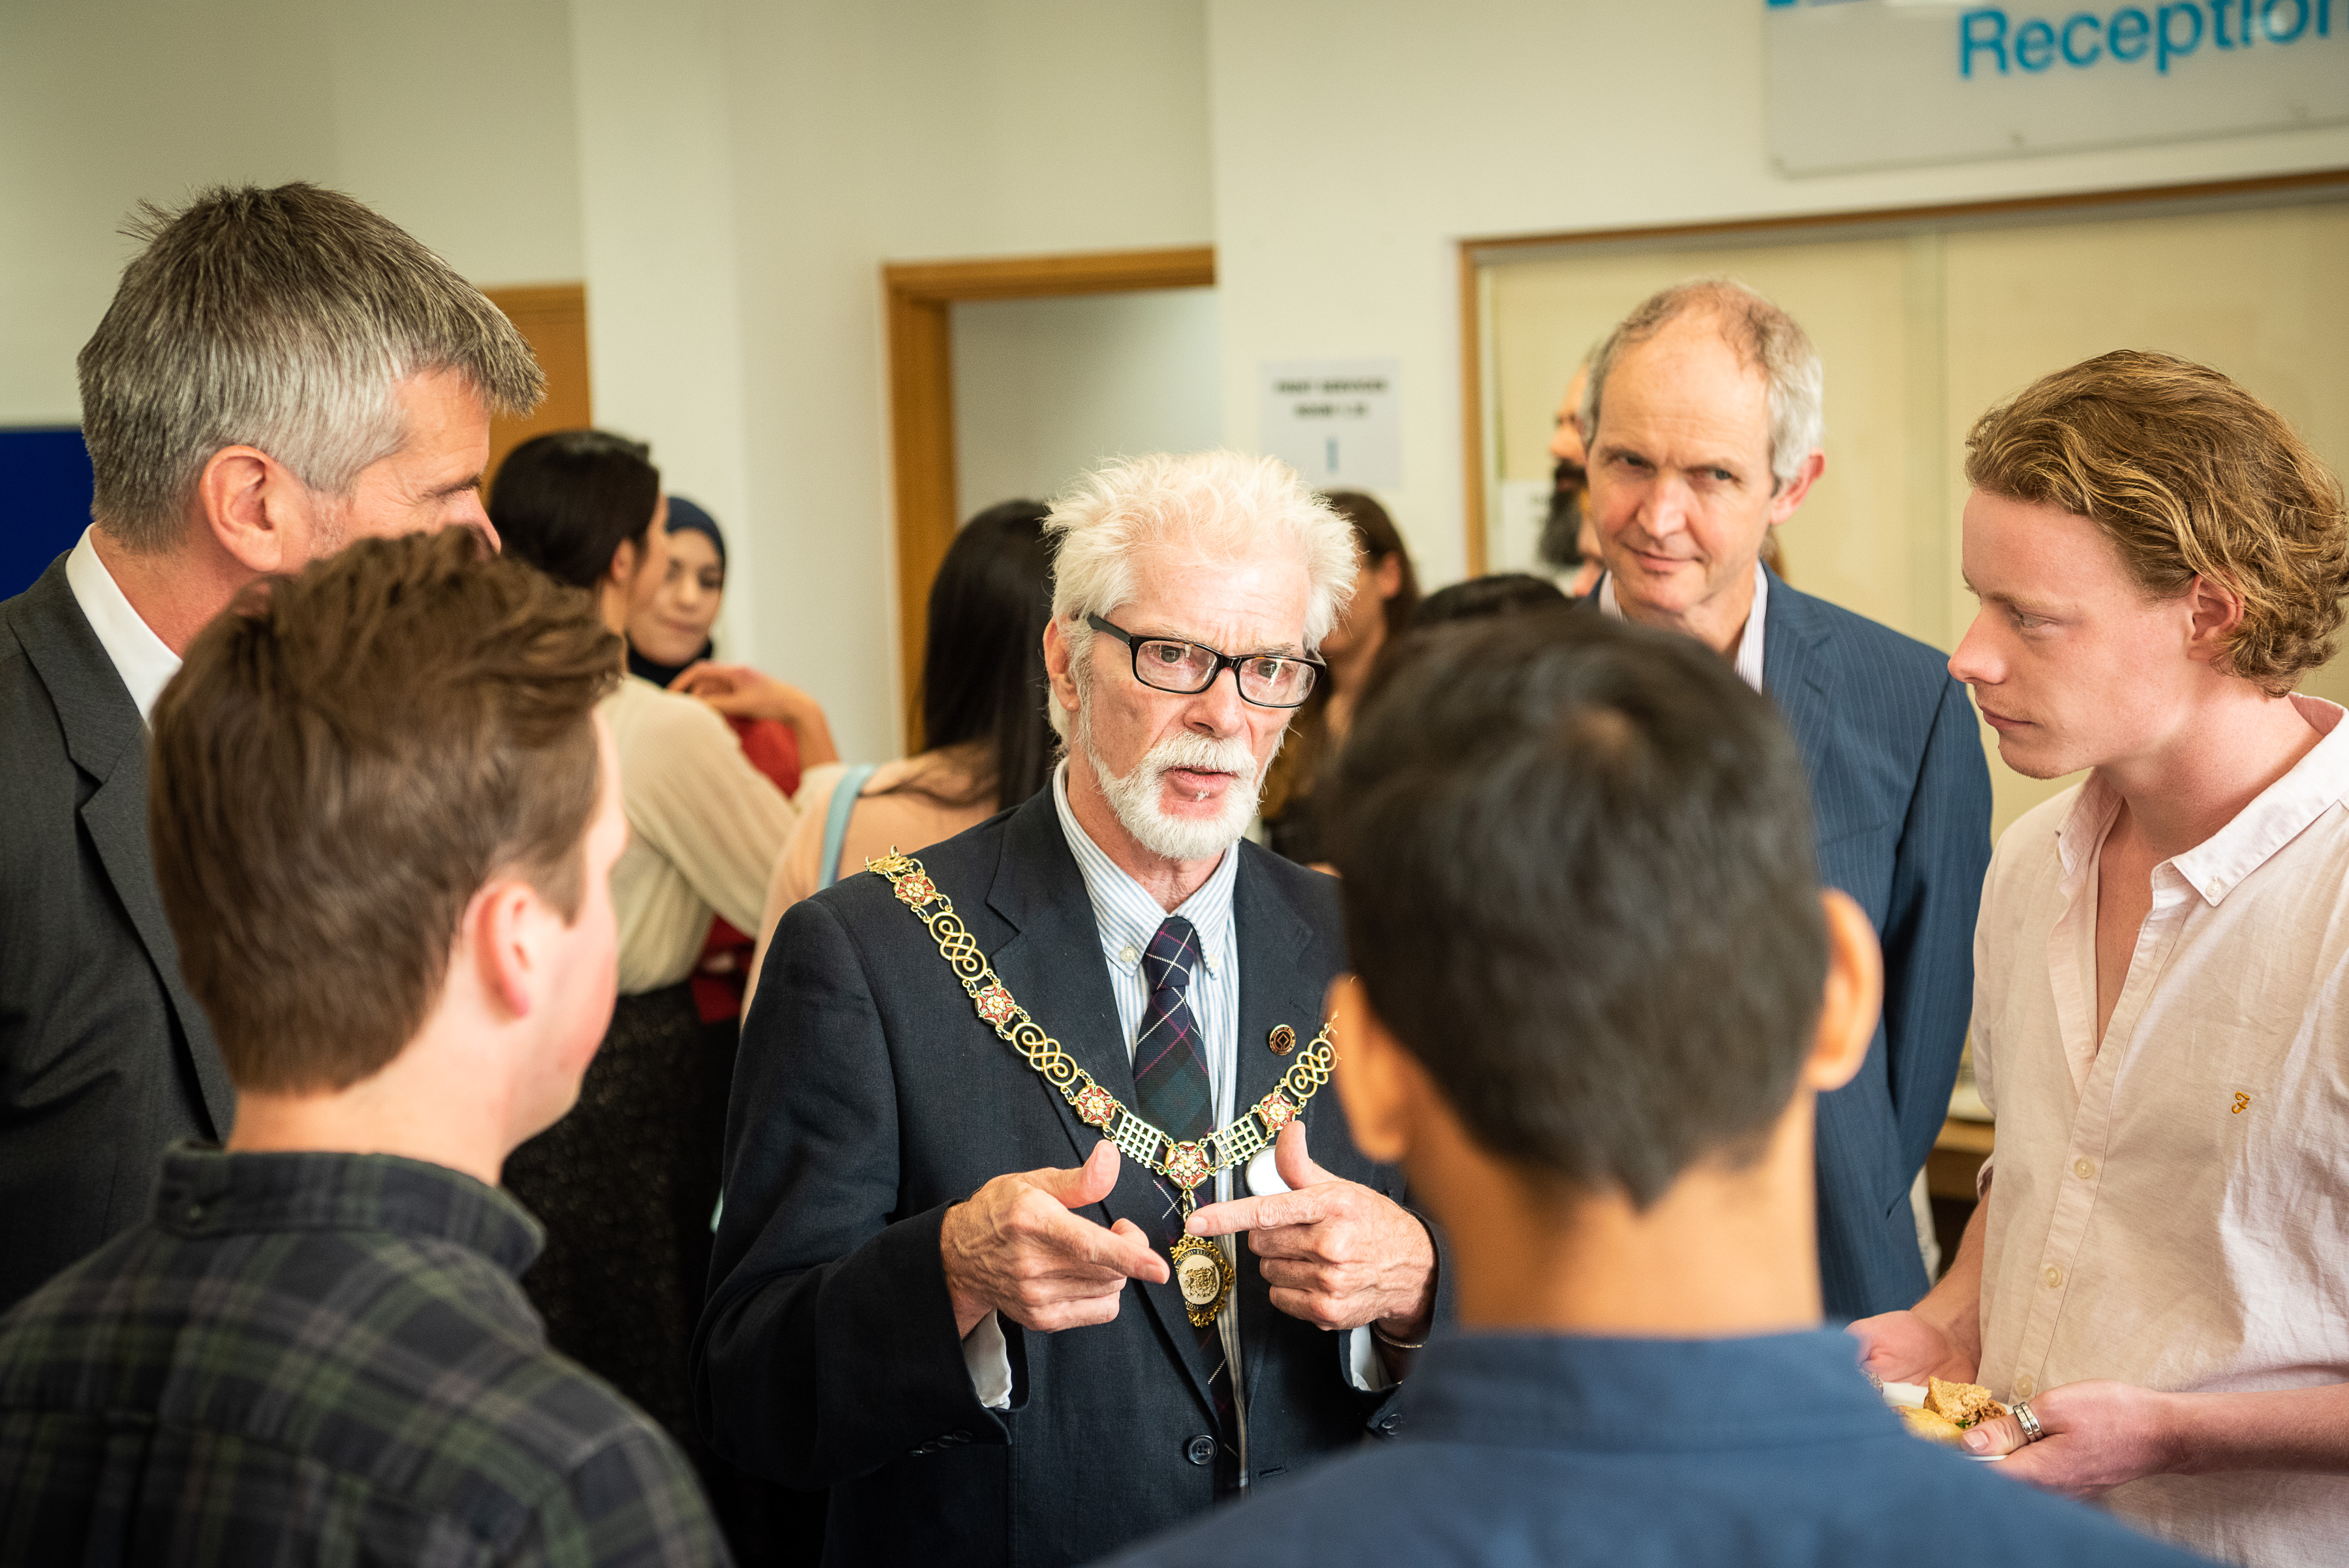 Students and staff from the School discussed their areas of research with the Mayor